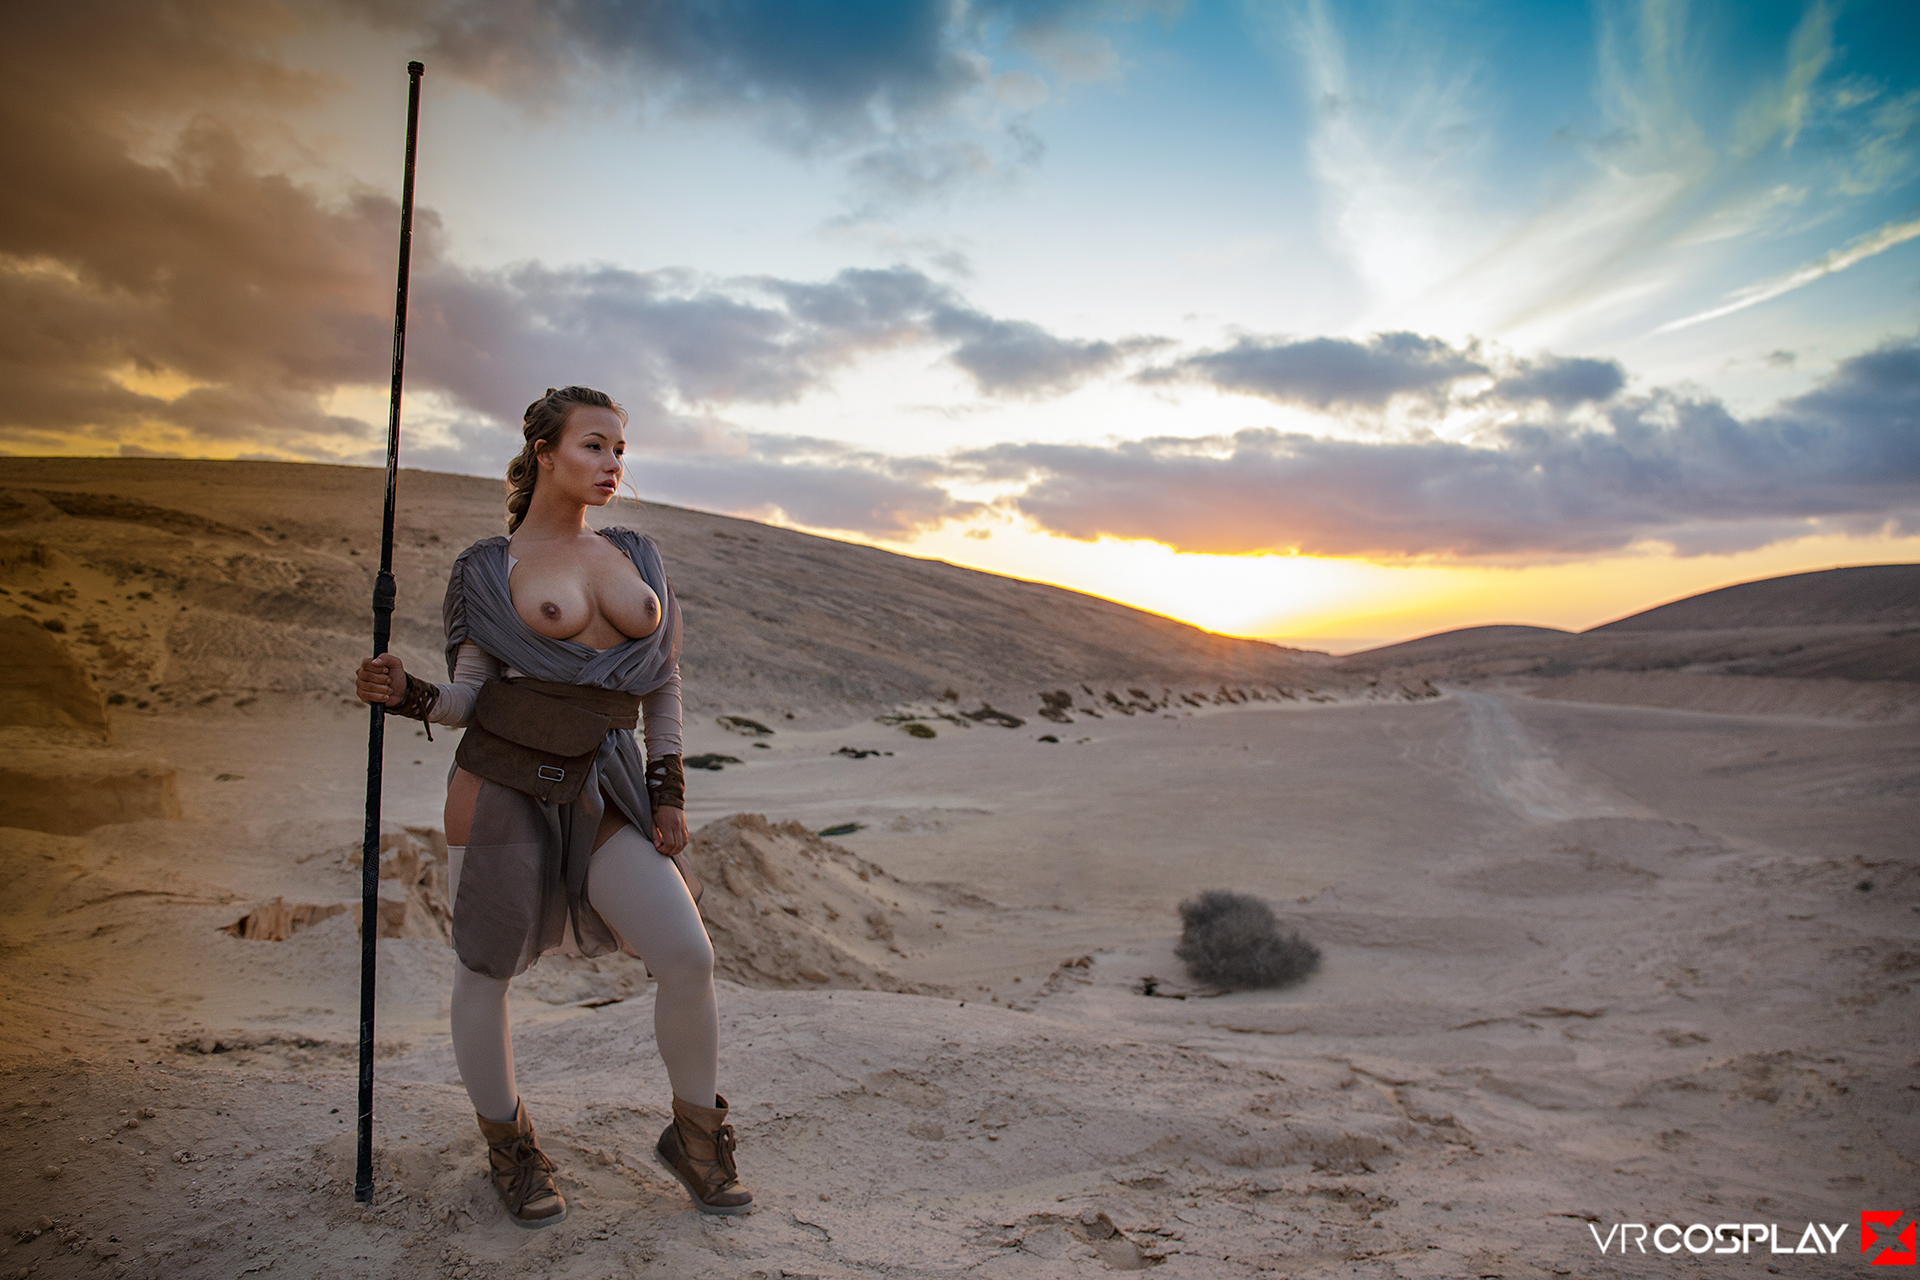 Star Wars Vr Porn Cosplay Starring Taylor Sands As Rey -1175